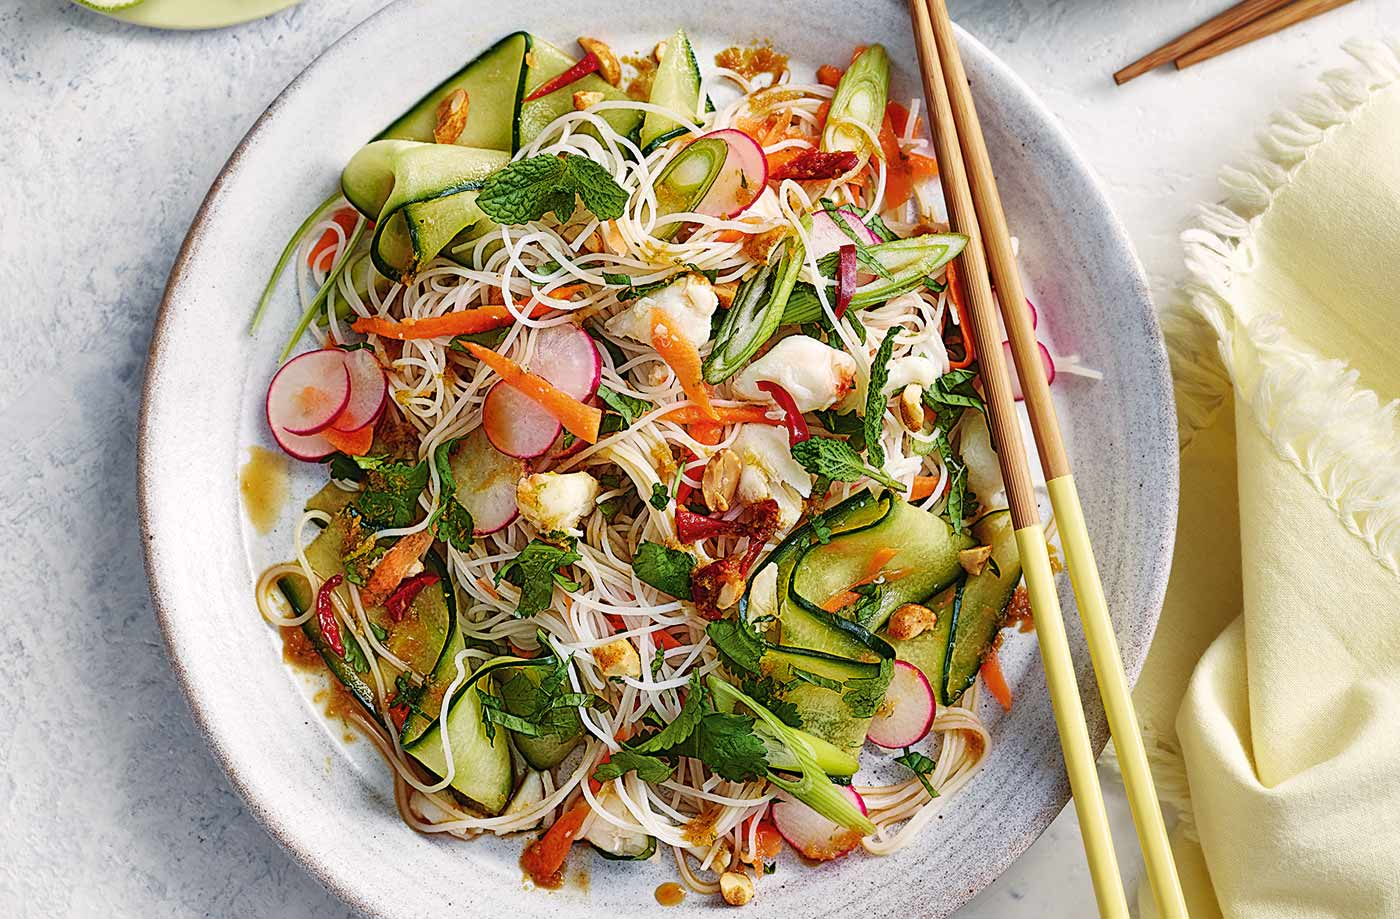 Vietnamese-style crab and noodle salad recipe